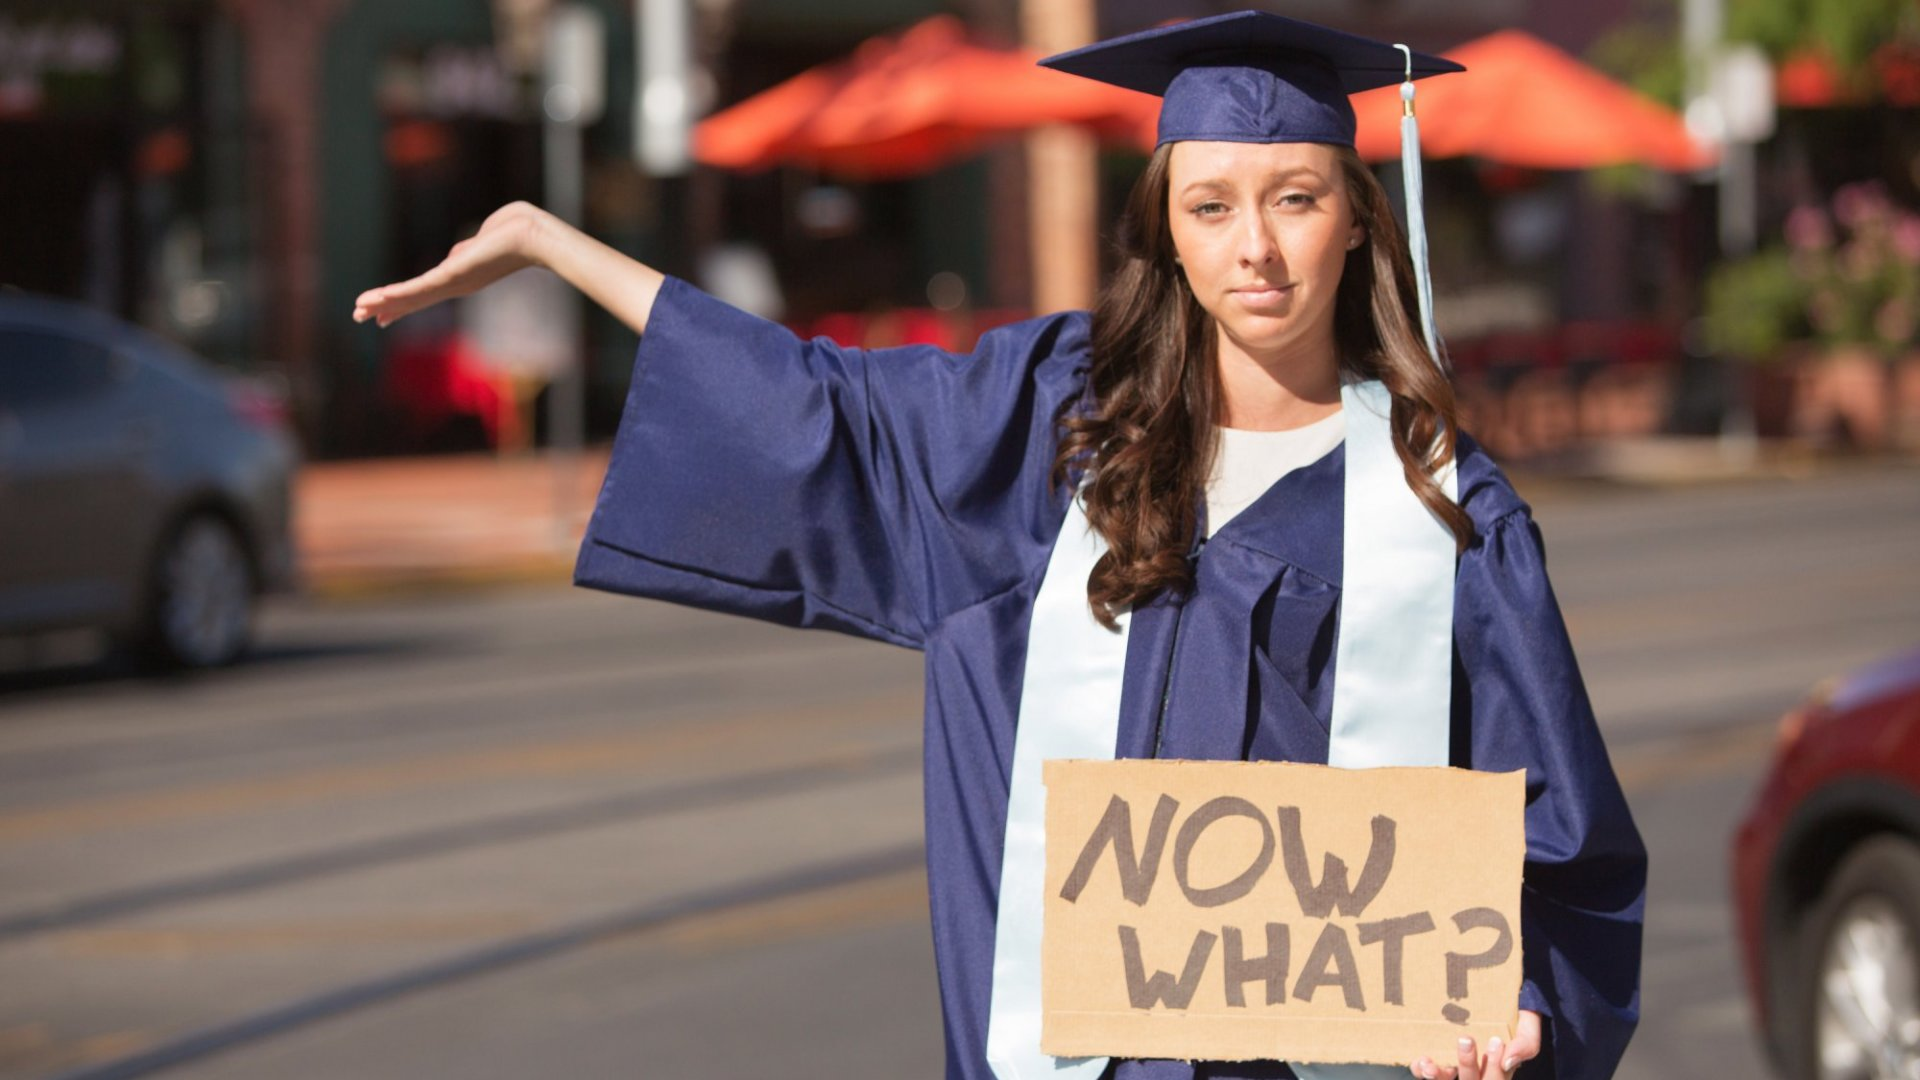 14 Tips for Graduates Entering Today's Workforce